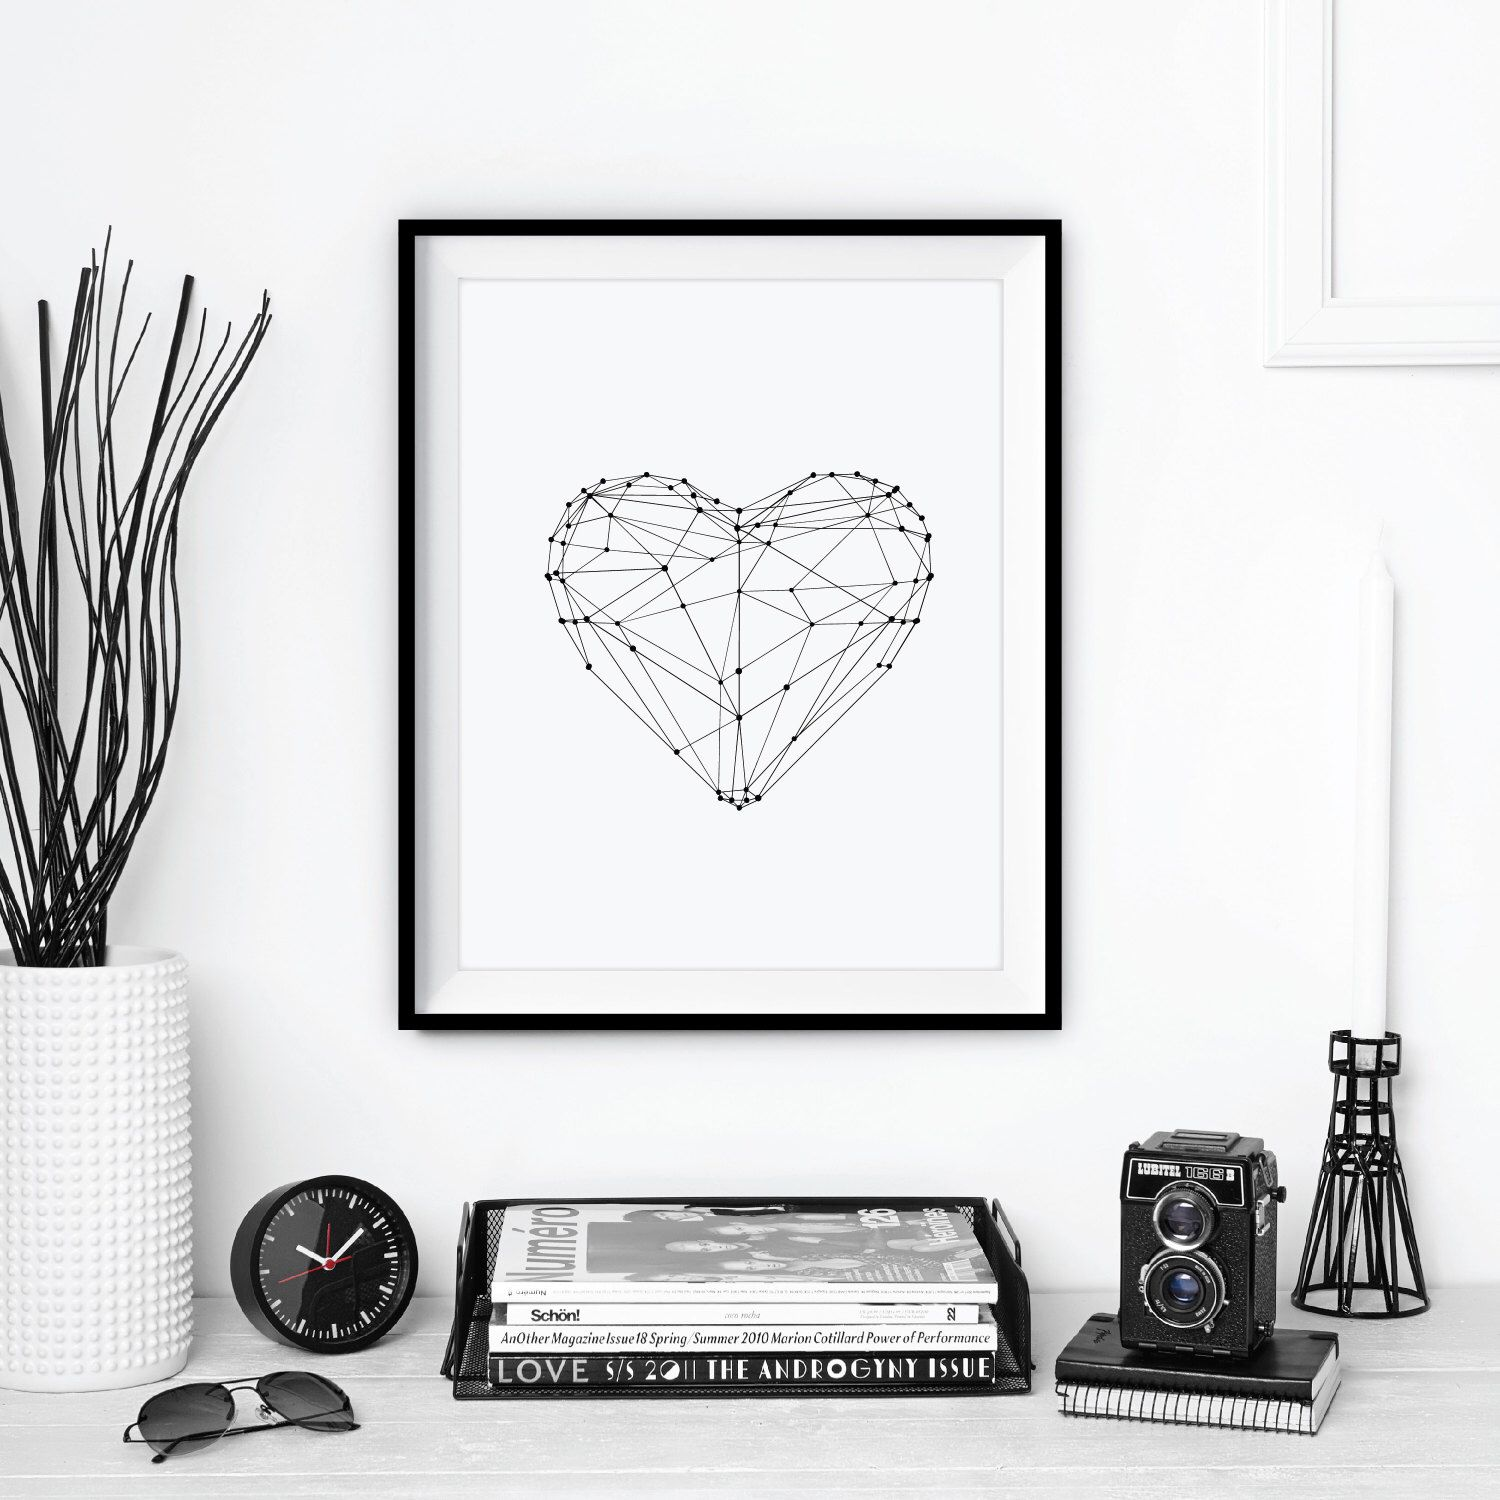 Inspirational Print Love Heart Geometric Inspirational Art Home Decor Poster Polygon Art Wall Decor Winter Gift New Year Resolution by TheMotivatedType on Etsy https://www.etsy.com/listing/198990330/inspirational-print-love-heart-geometric